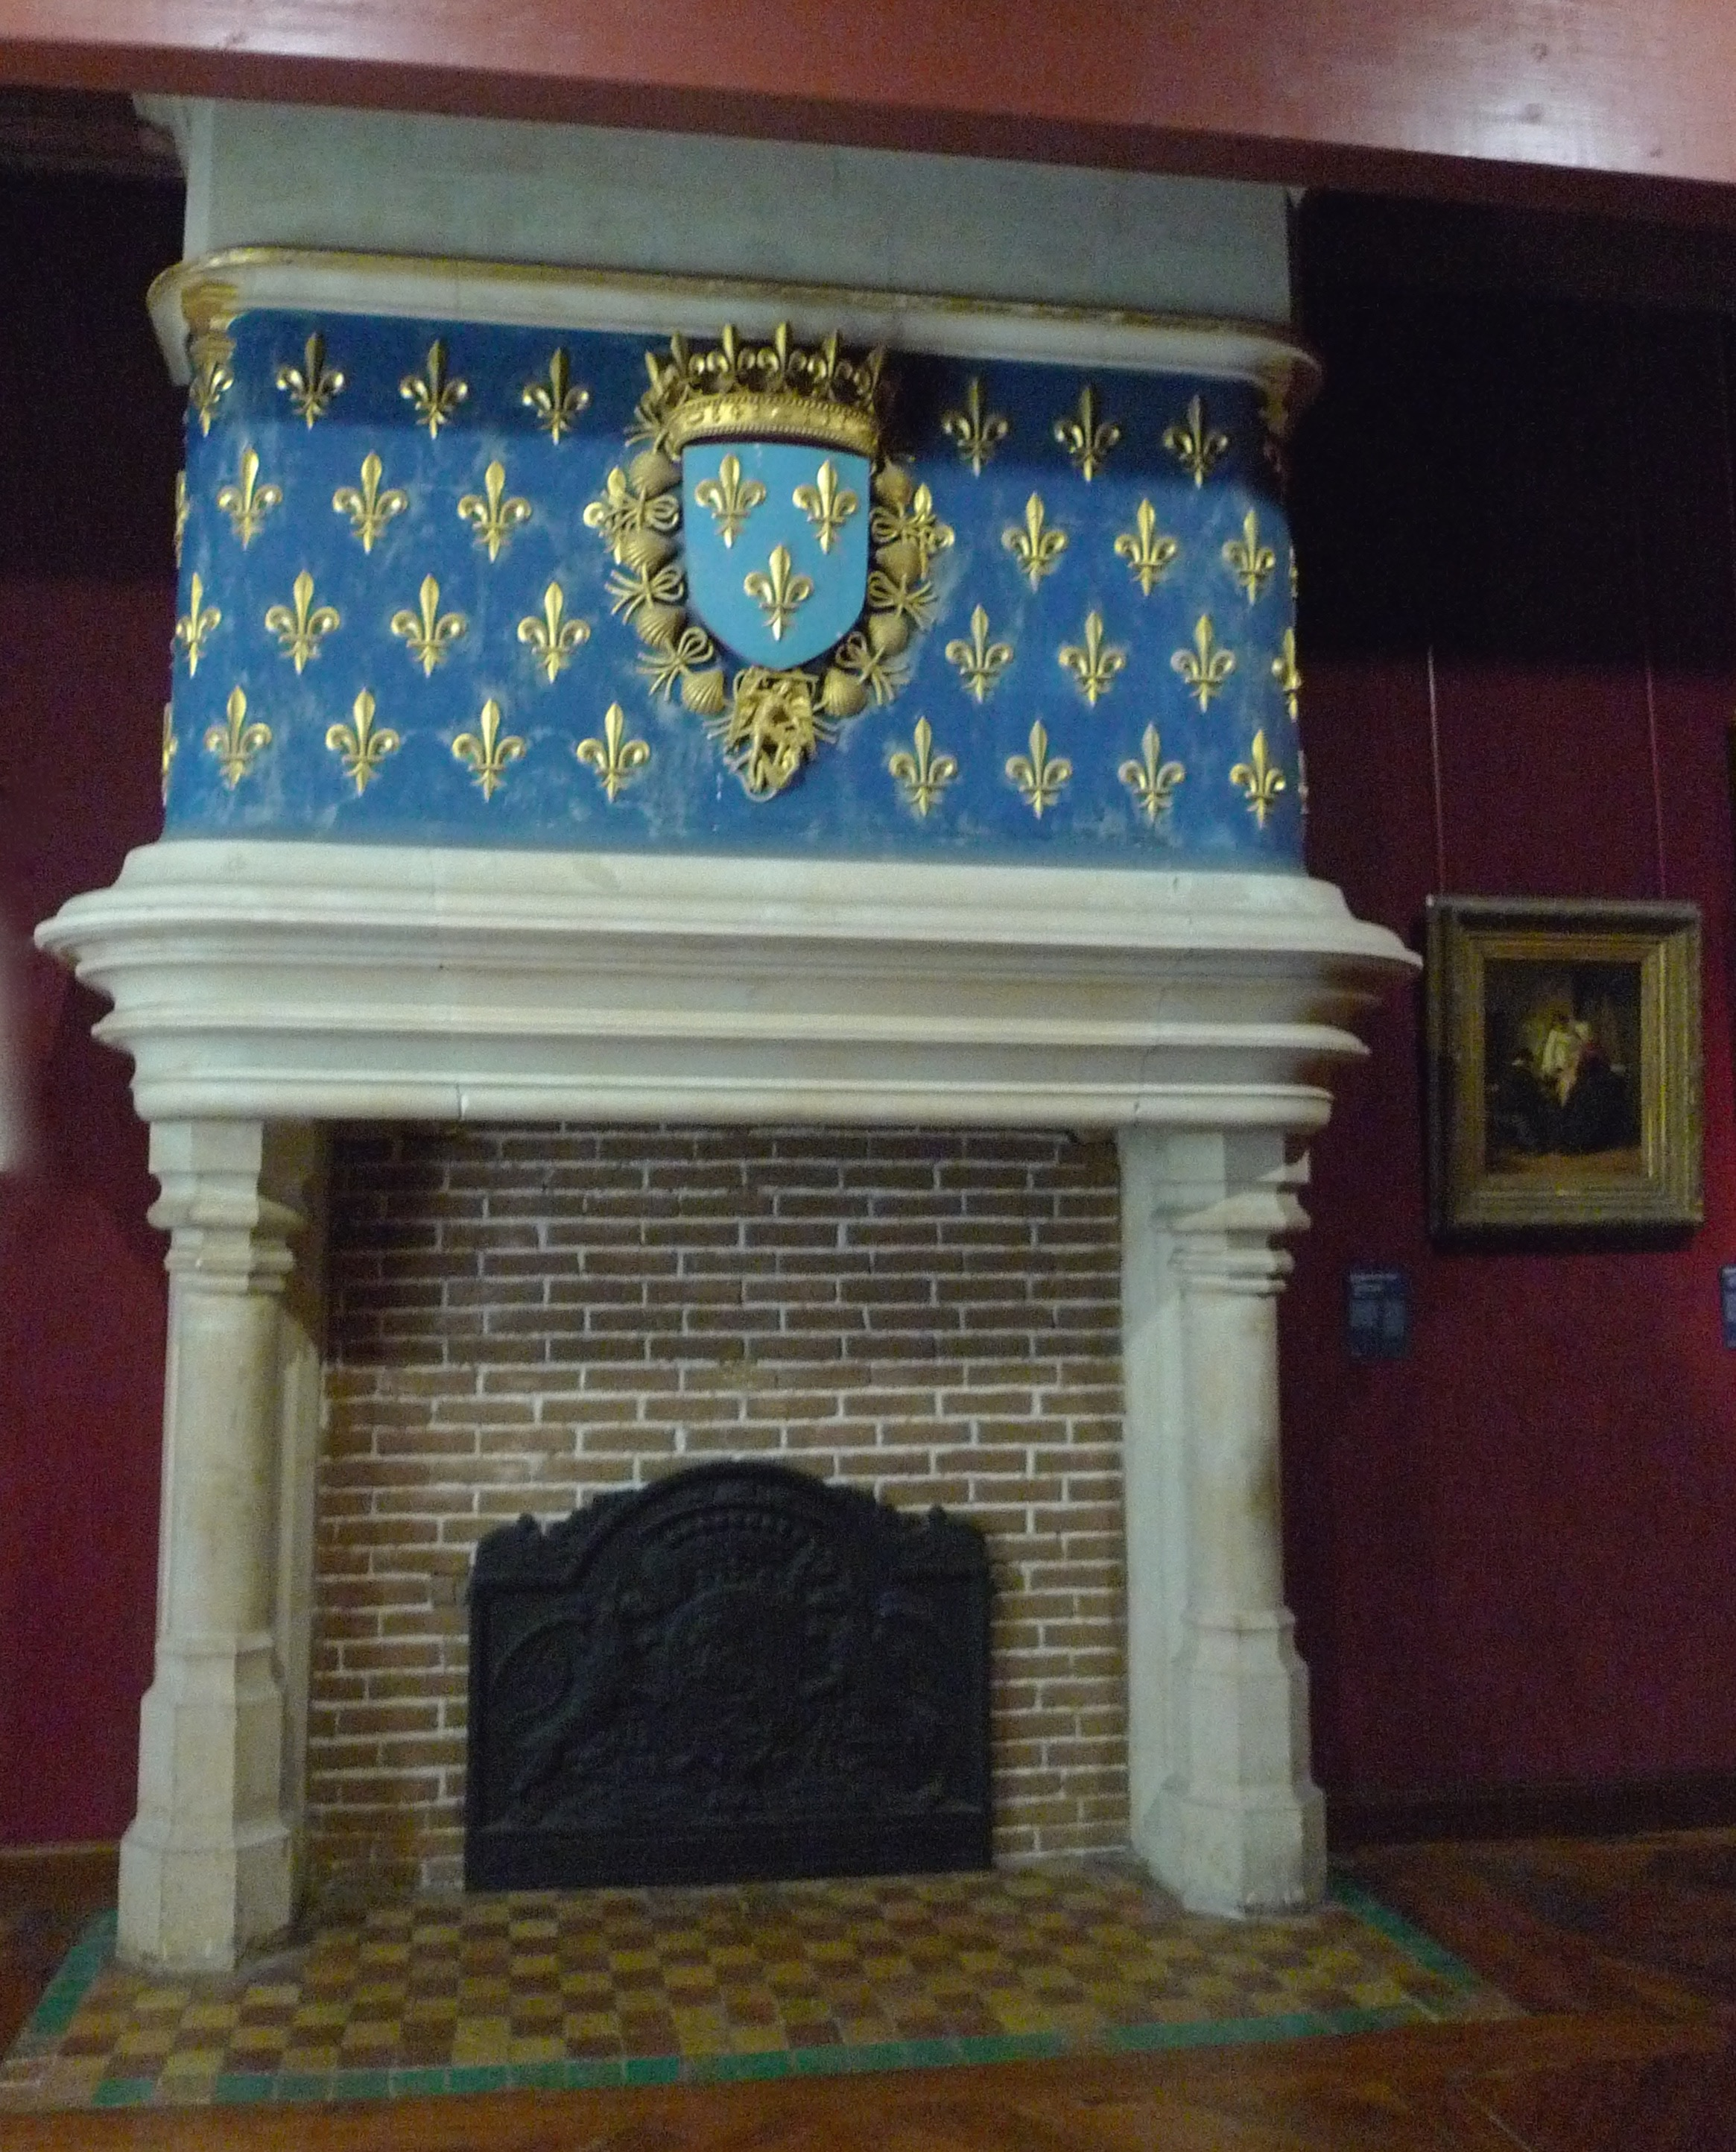 The fireplaces are all similar, but different